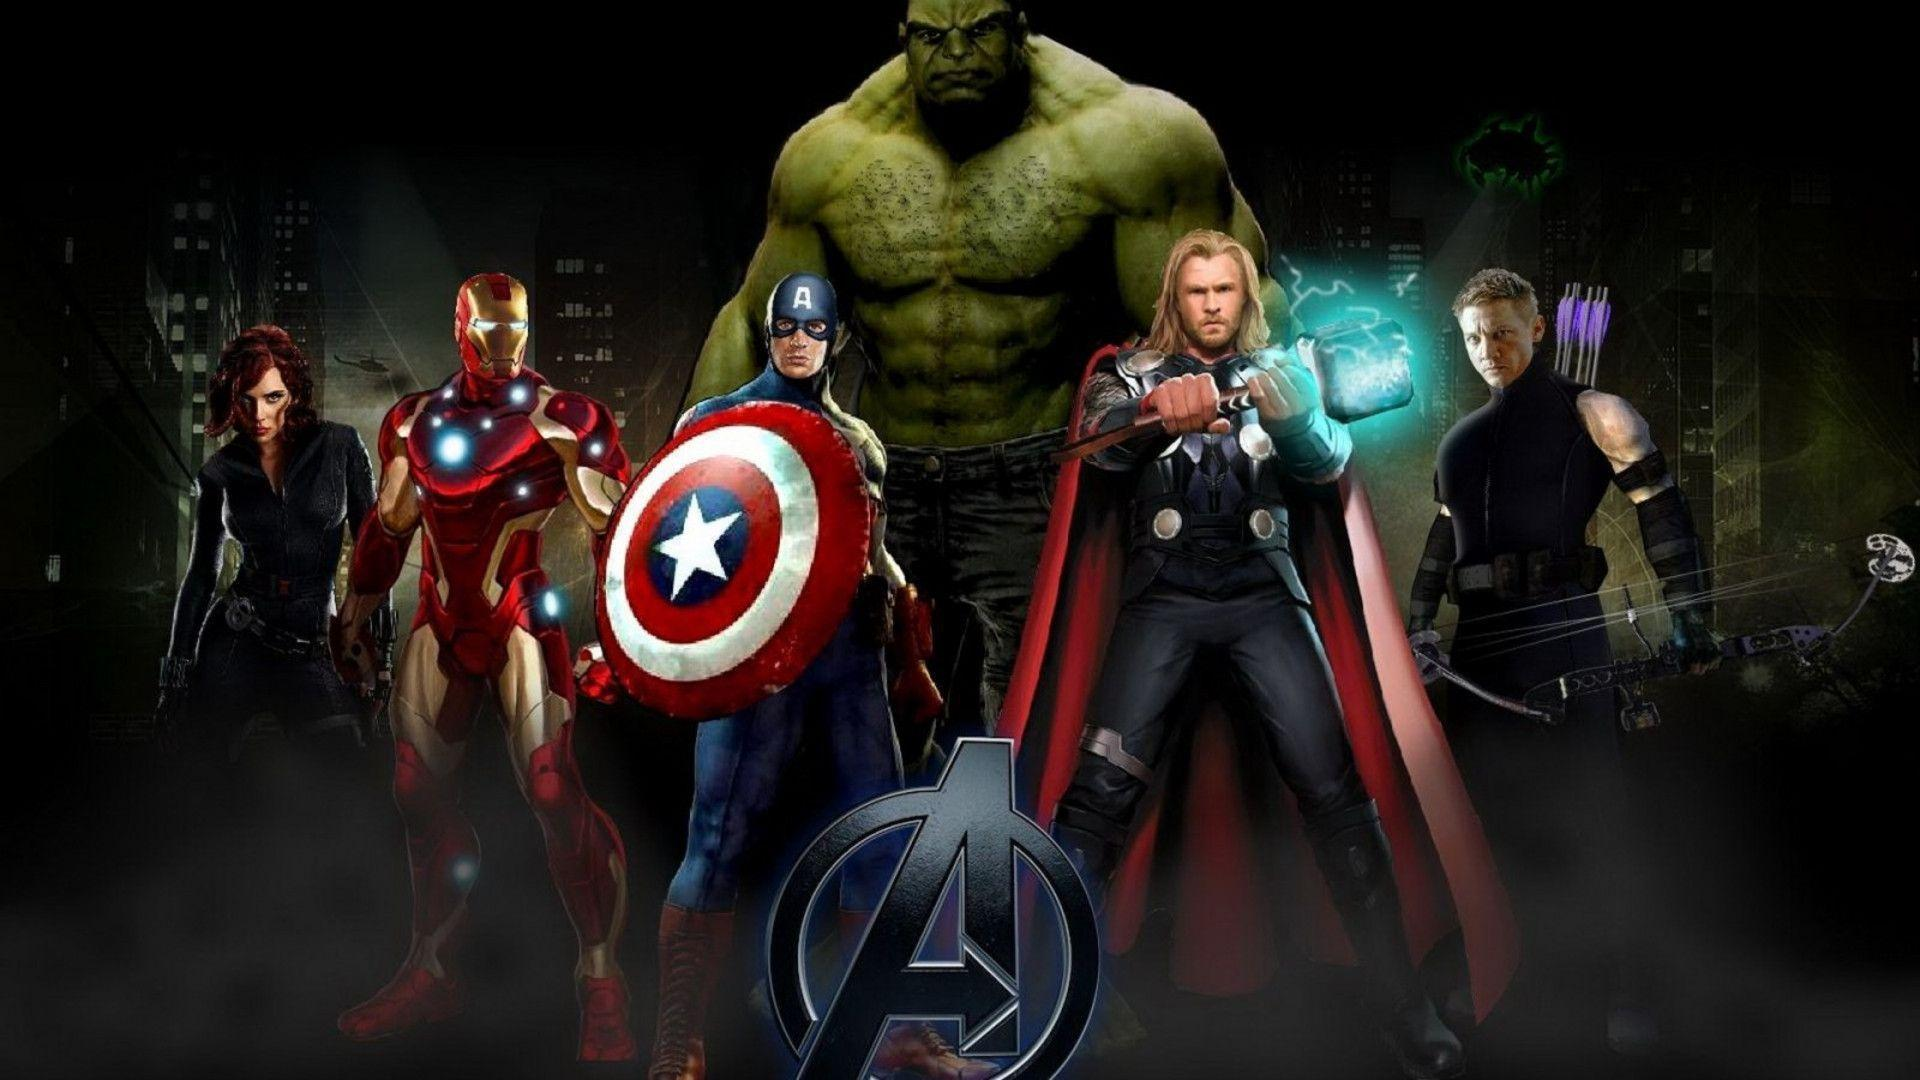 Wallpapers For > Avengers Wallpaper Hd 1920x1080